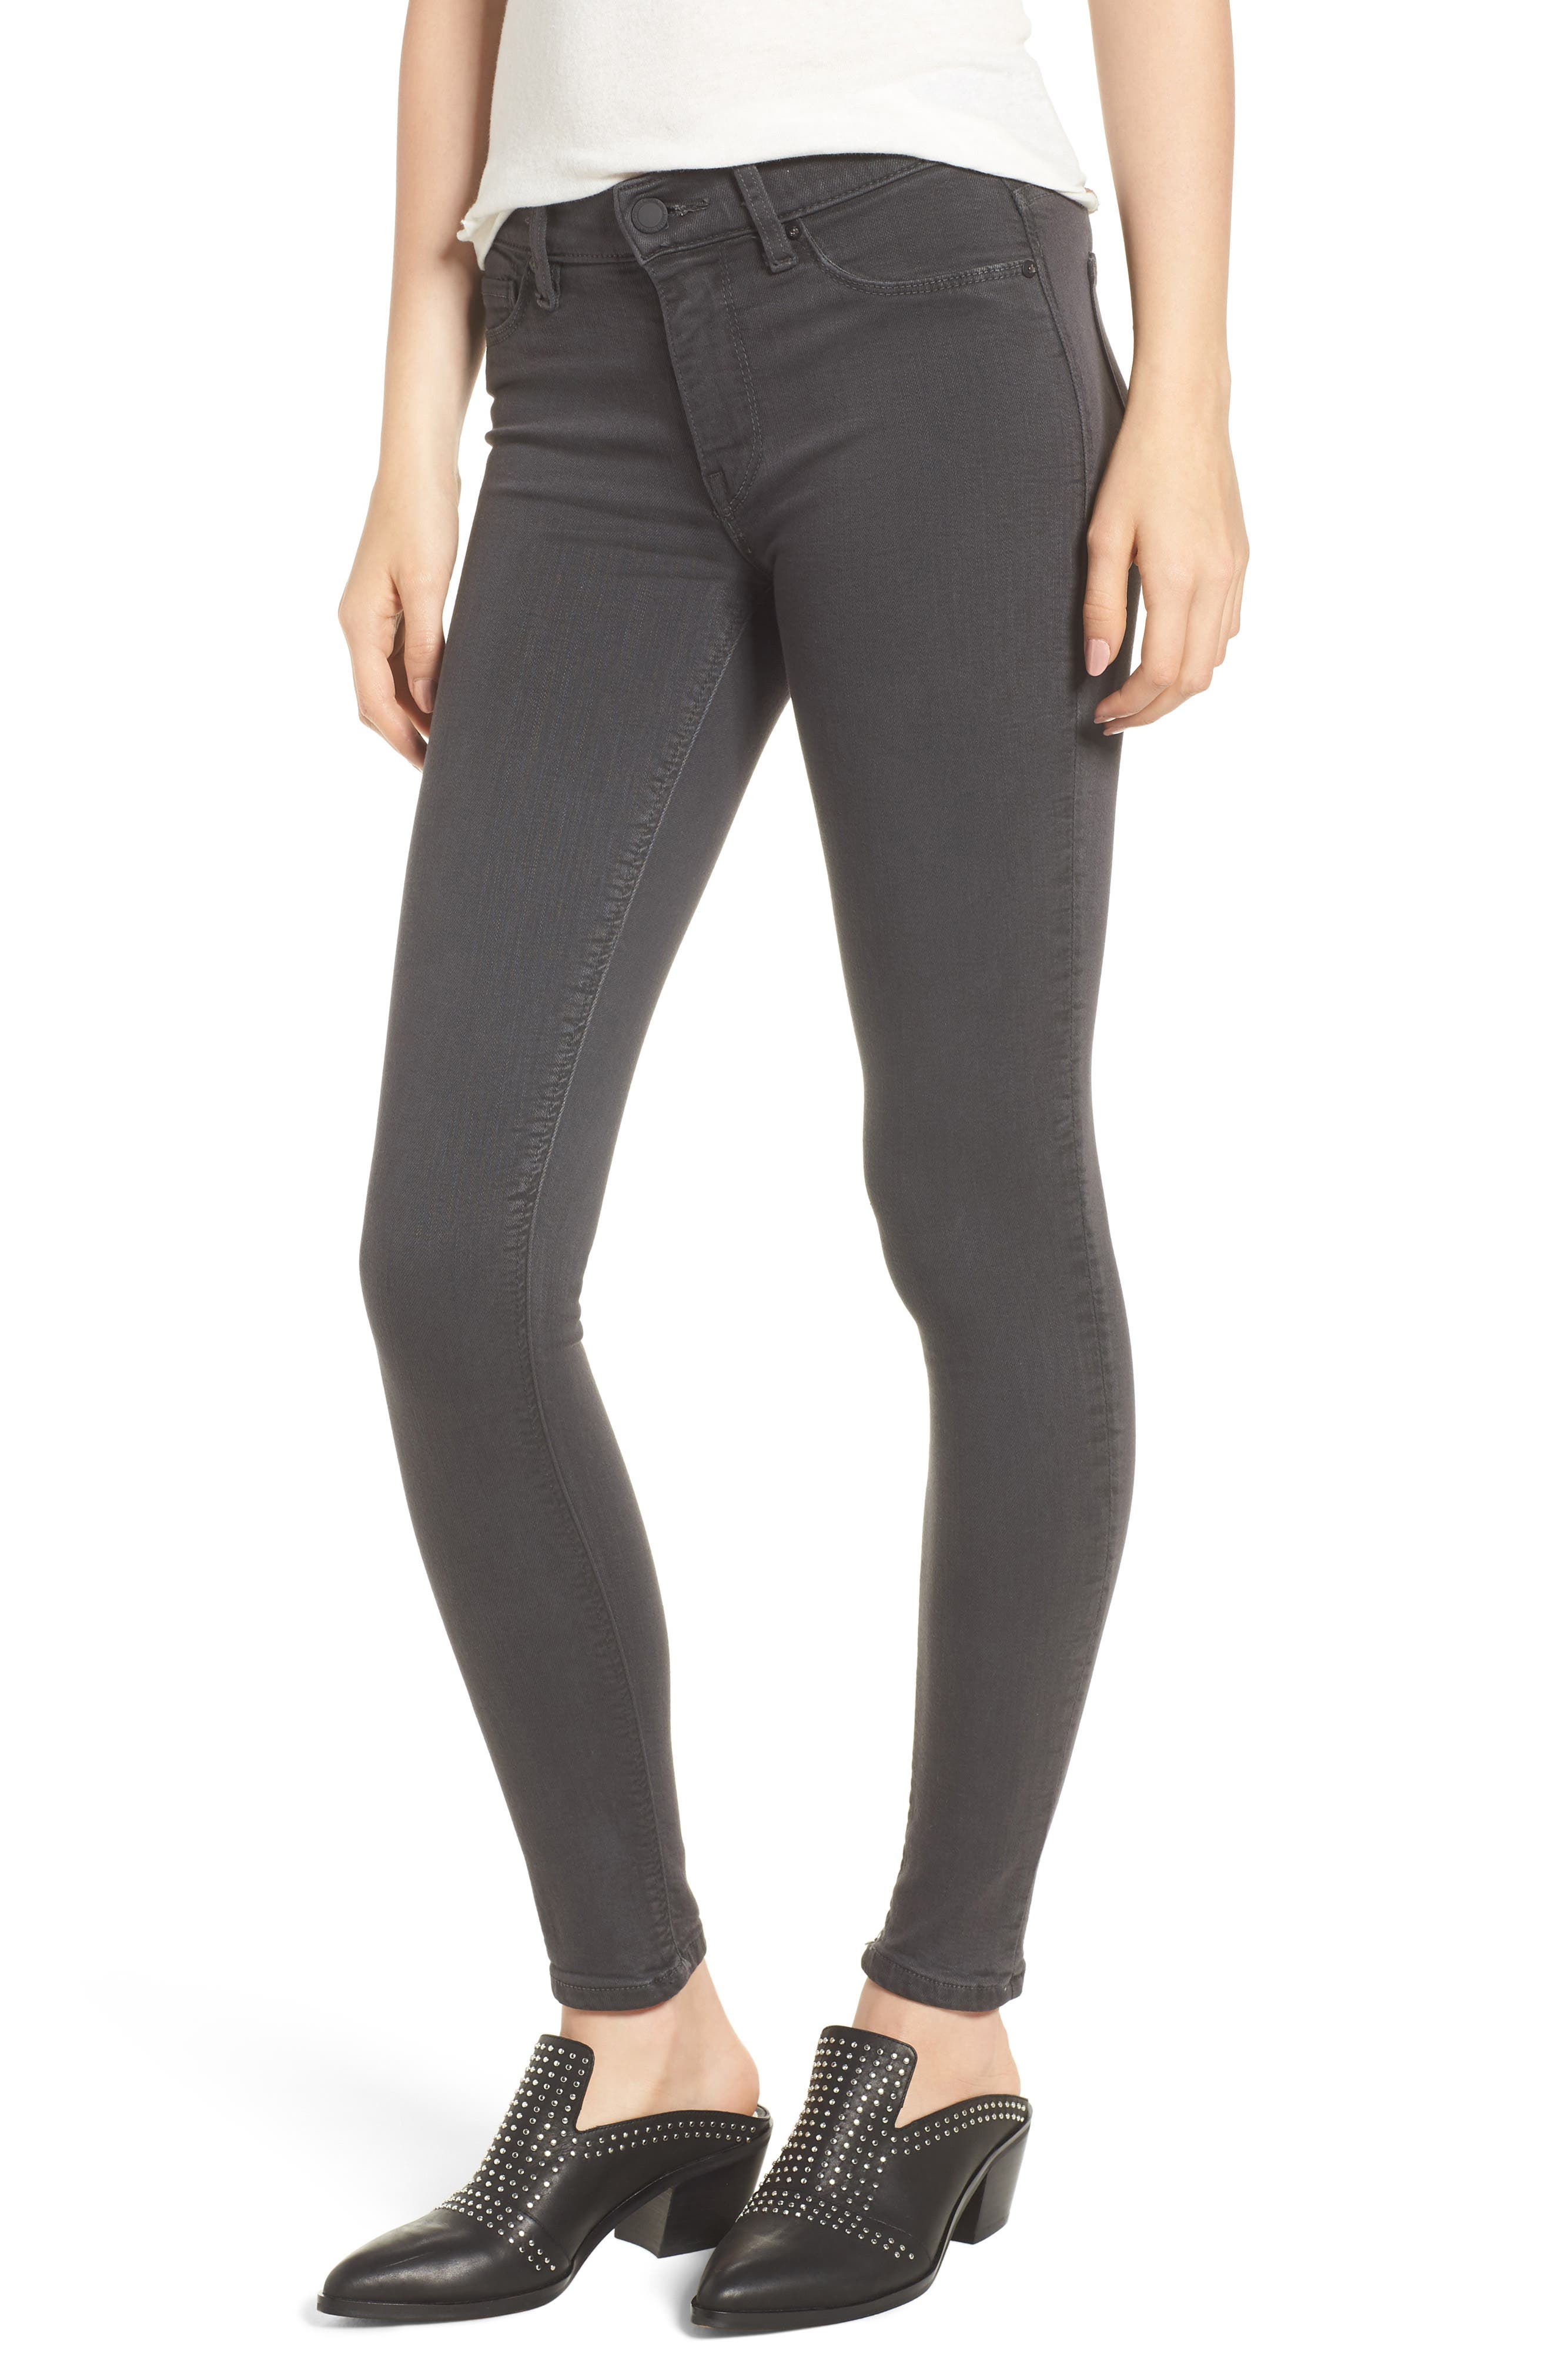 HudsonJeans Nico Coated Super Skinny Jeans,                         Main,                         color, Distressed Graphite